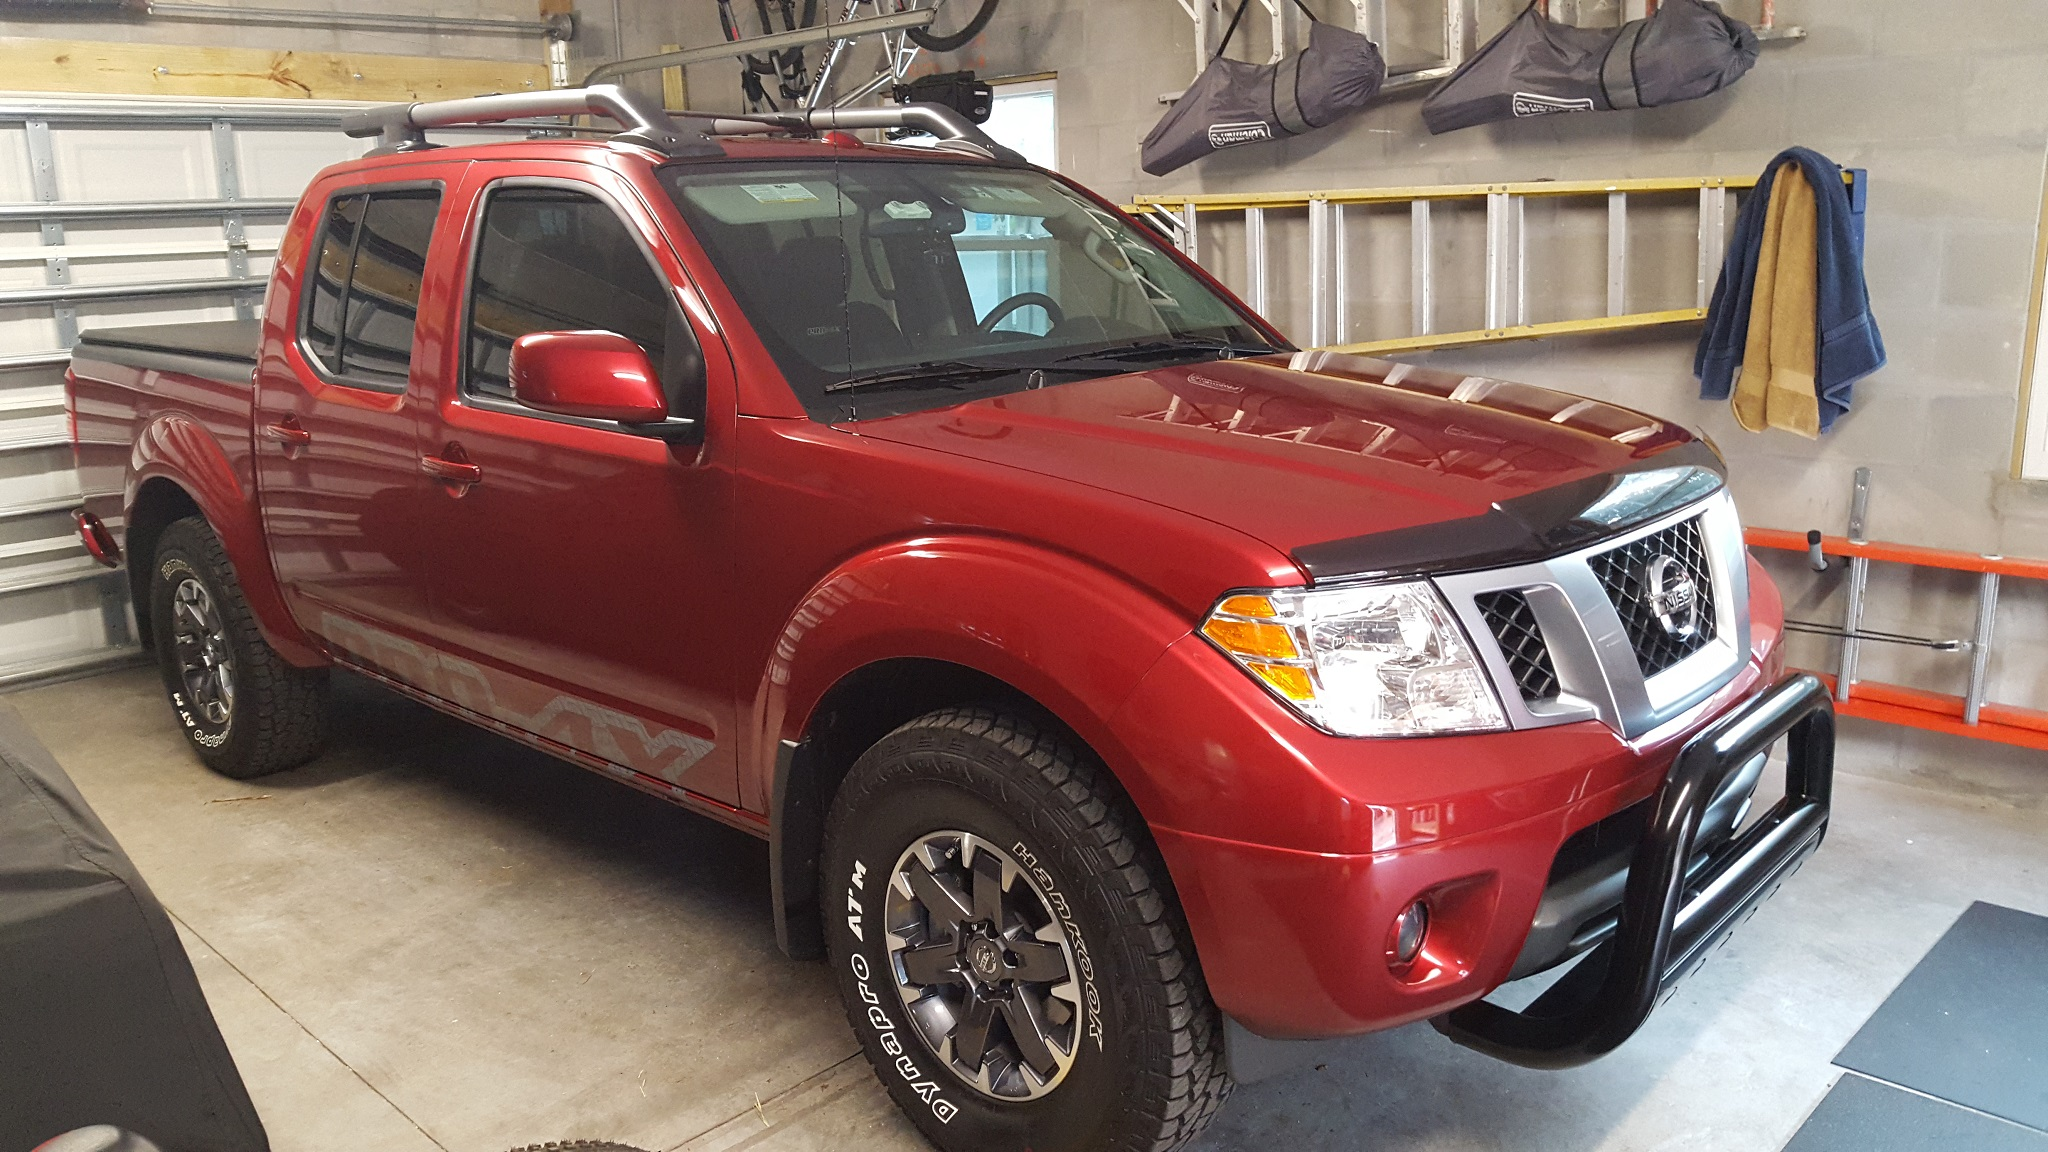 pro nissan king frontier white brantford listings full glacier cab crew